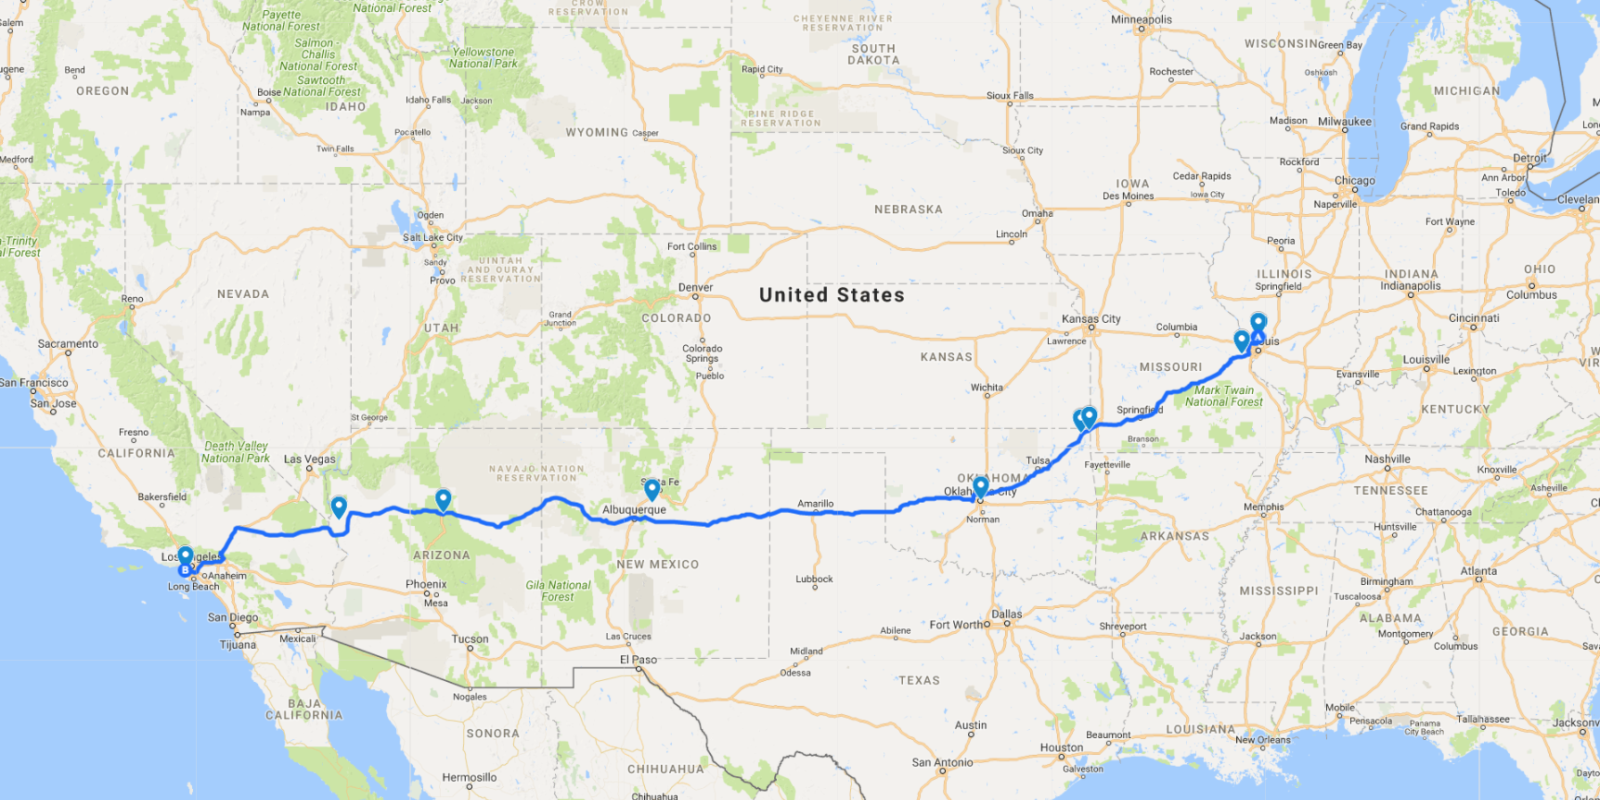 Road Trip Route Usa Wall HD - Map usa road